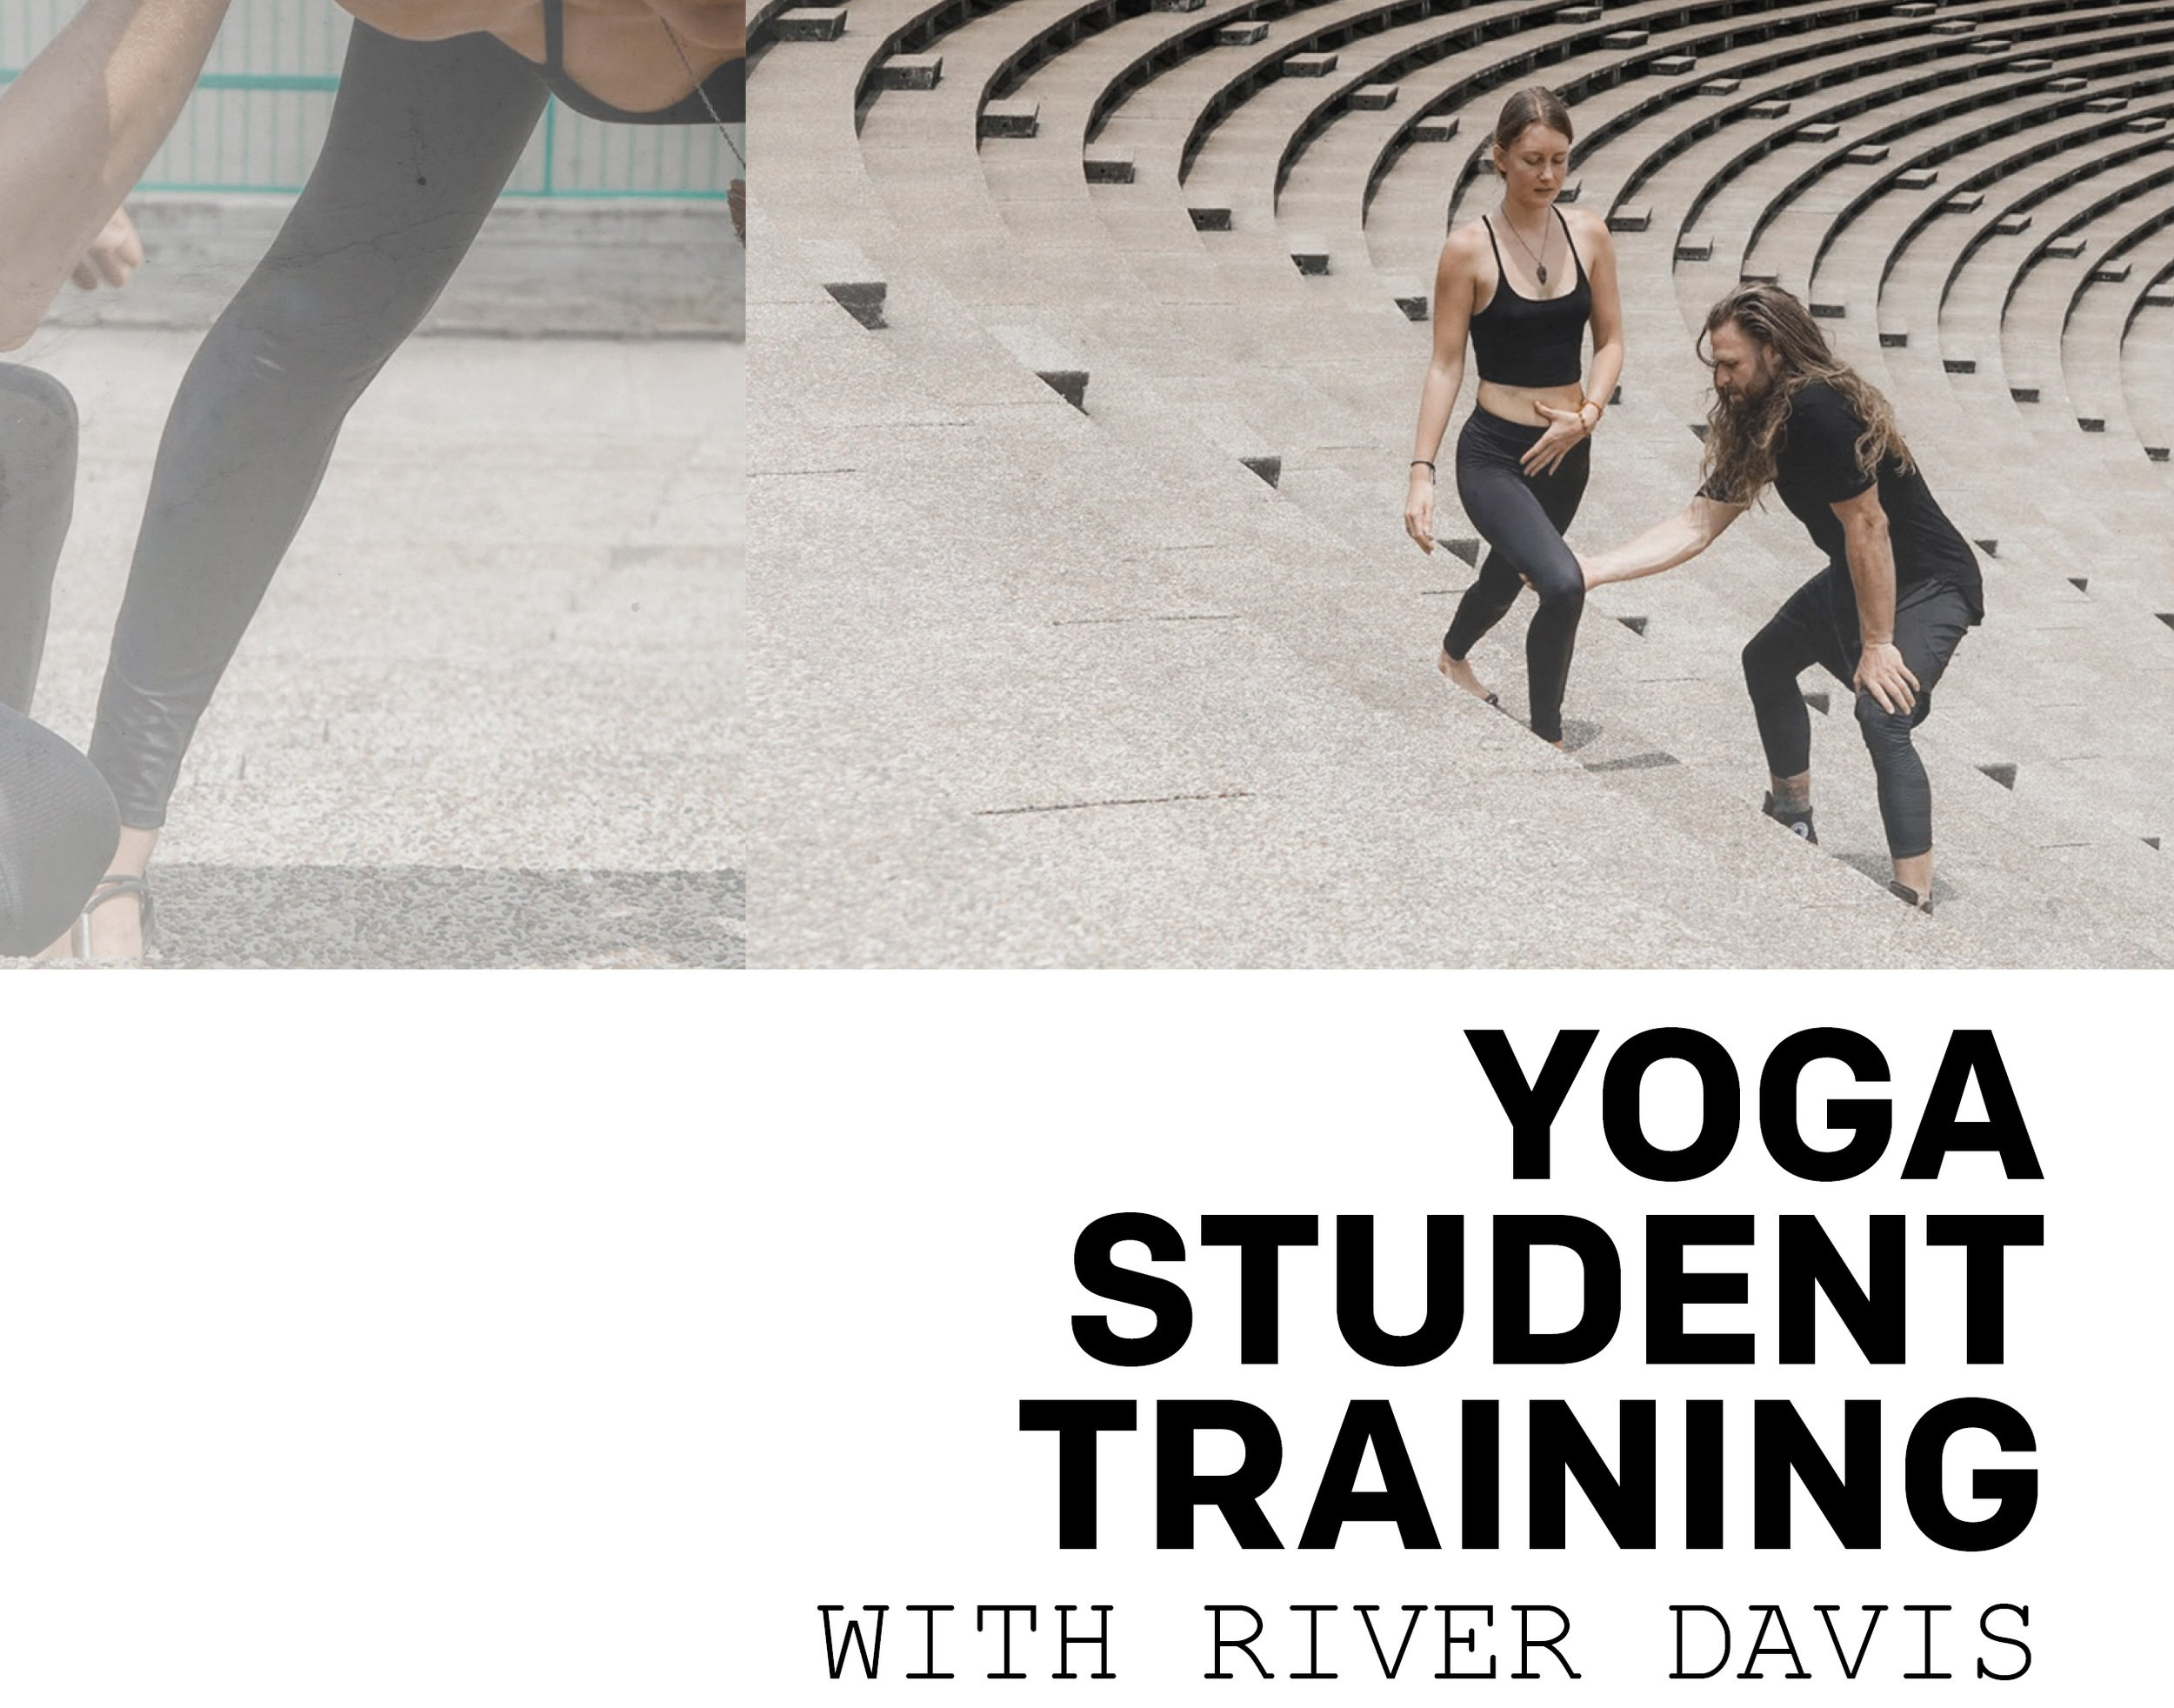 Yoga+Student+Training+Workshop+_Yoga+Tribe_9-7.jpg